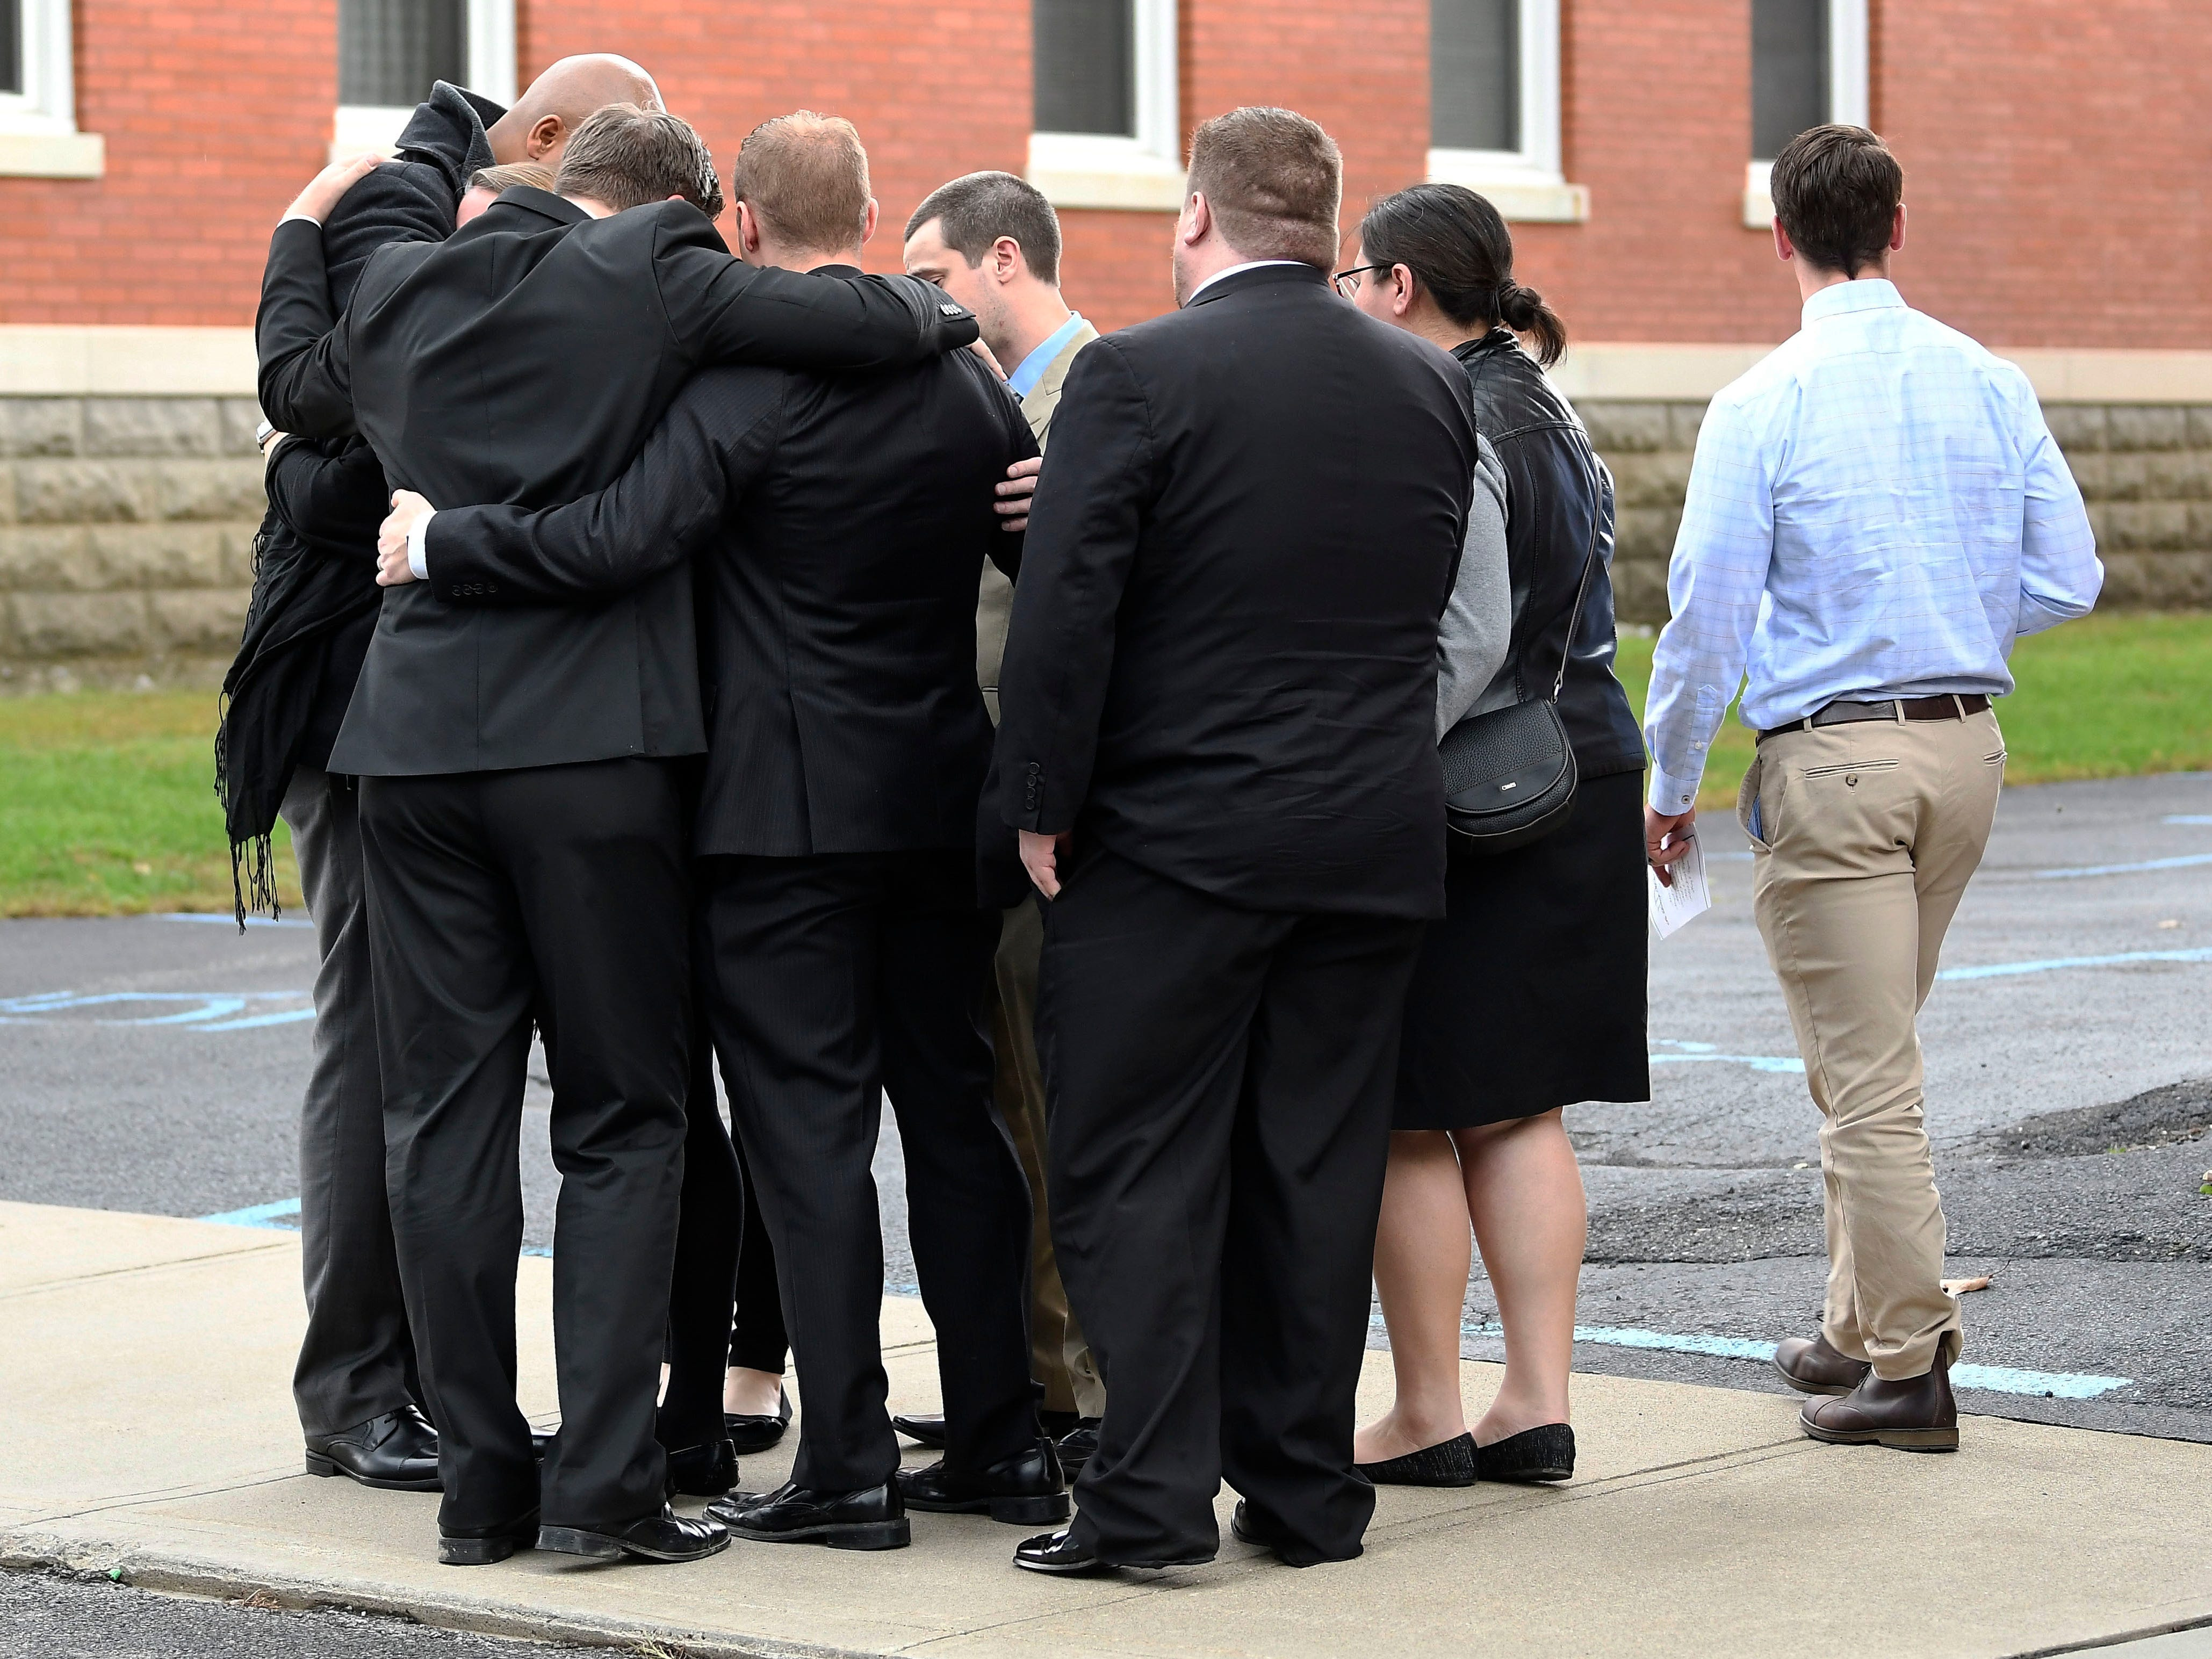 Friends and family arrive for a funeral Mass for eight of the 20 people killed in last Saturday's fatal limousine crash in Schoharie, N.Y., at St. Stanislaus Roman Catholic Church in Amsterdam, N.Y., Saturday, Oct. 13, 2018. (AP Photo/Hans Pennink)